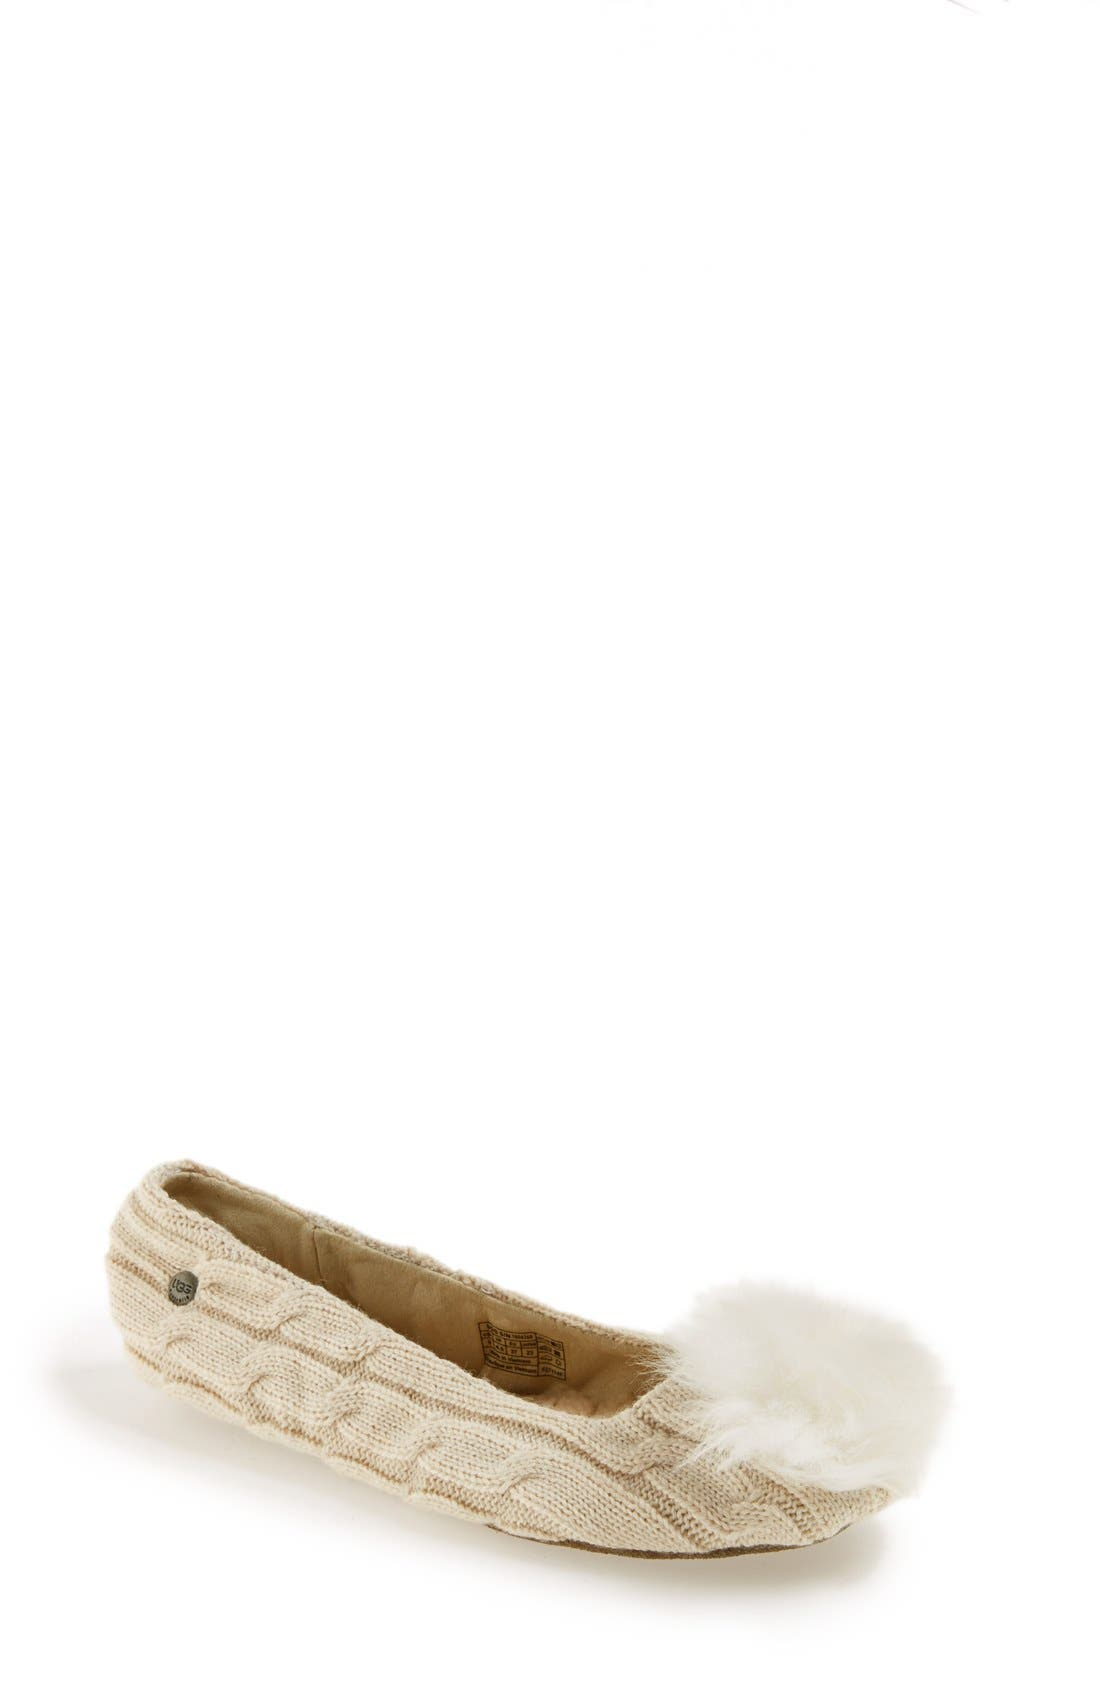 Main Image - UGG® Australia 'Andi' Slipper (Women)